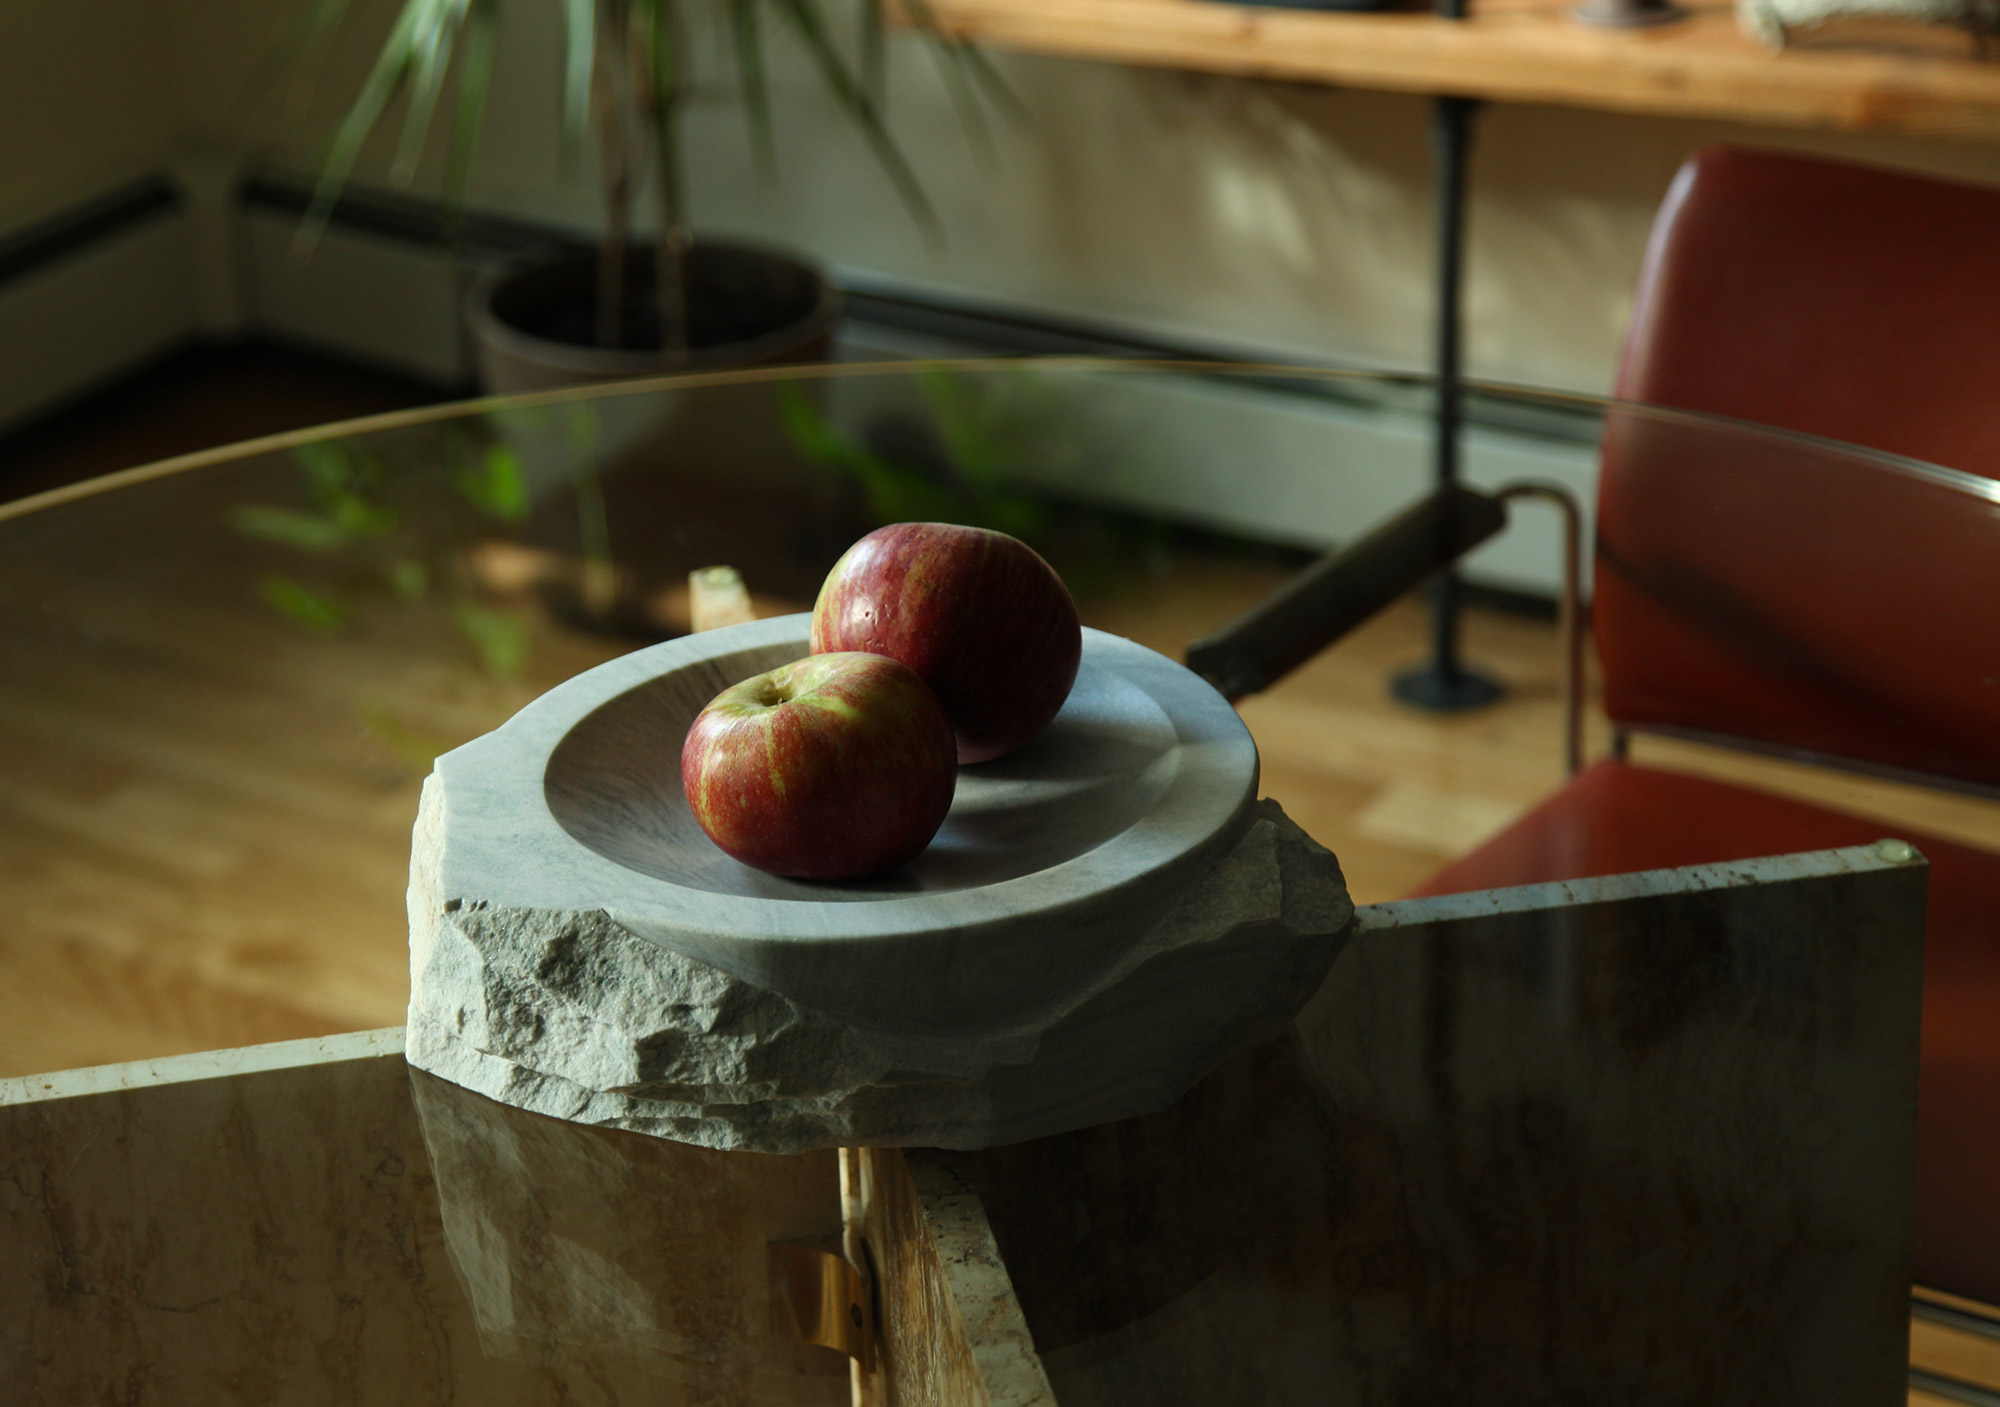 Greenpoint-Stone-Vermont-Marble-Bowl.jpg